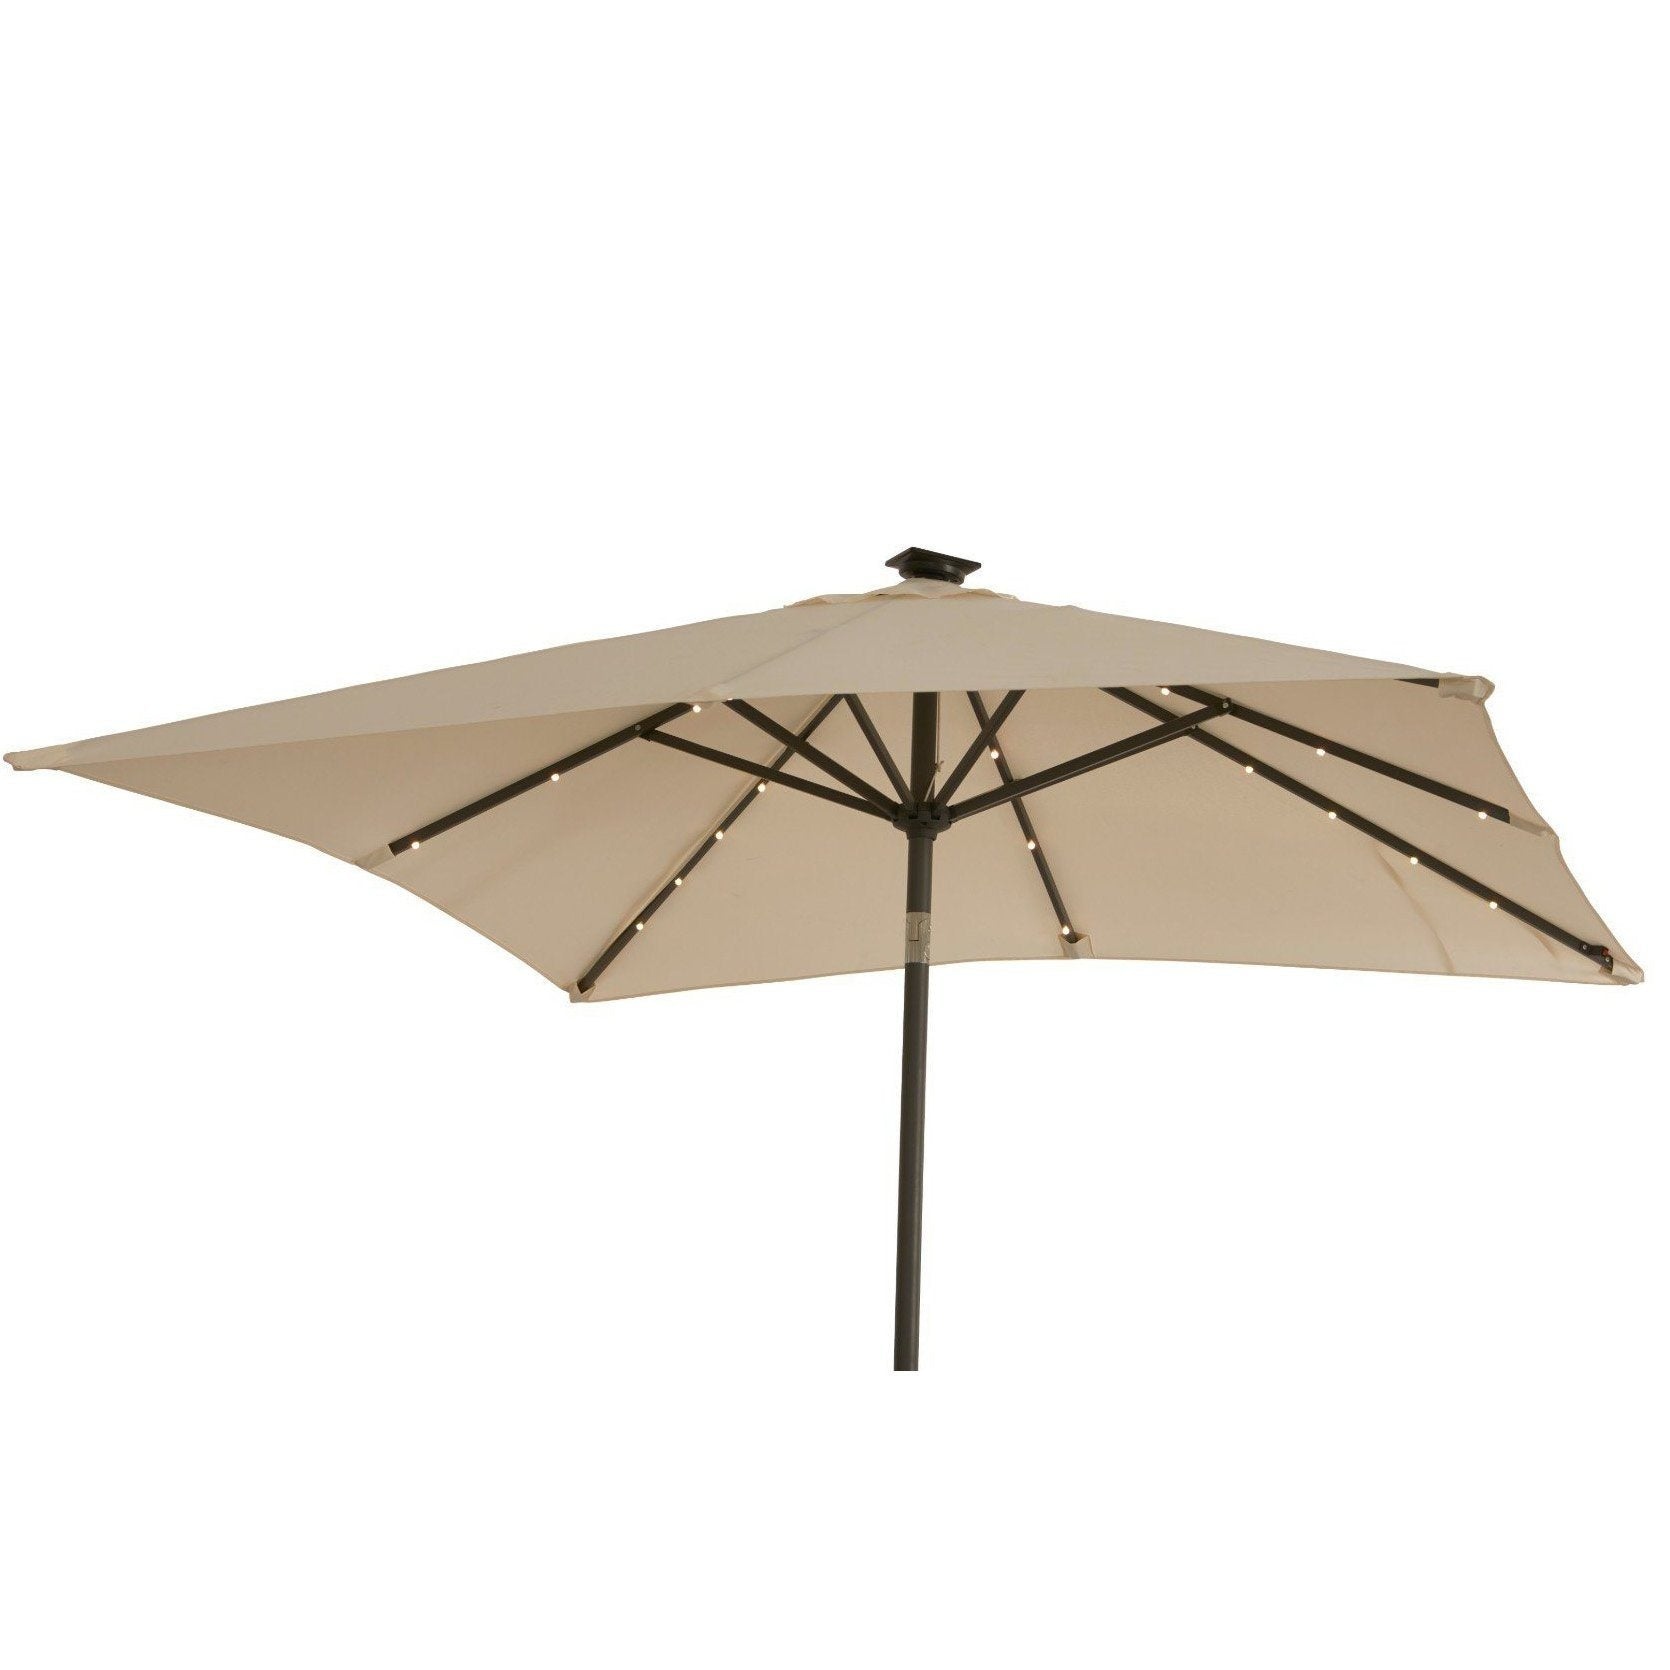 Premium LED 2x2m Square Parasol - Laura James